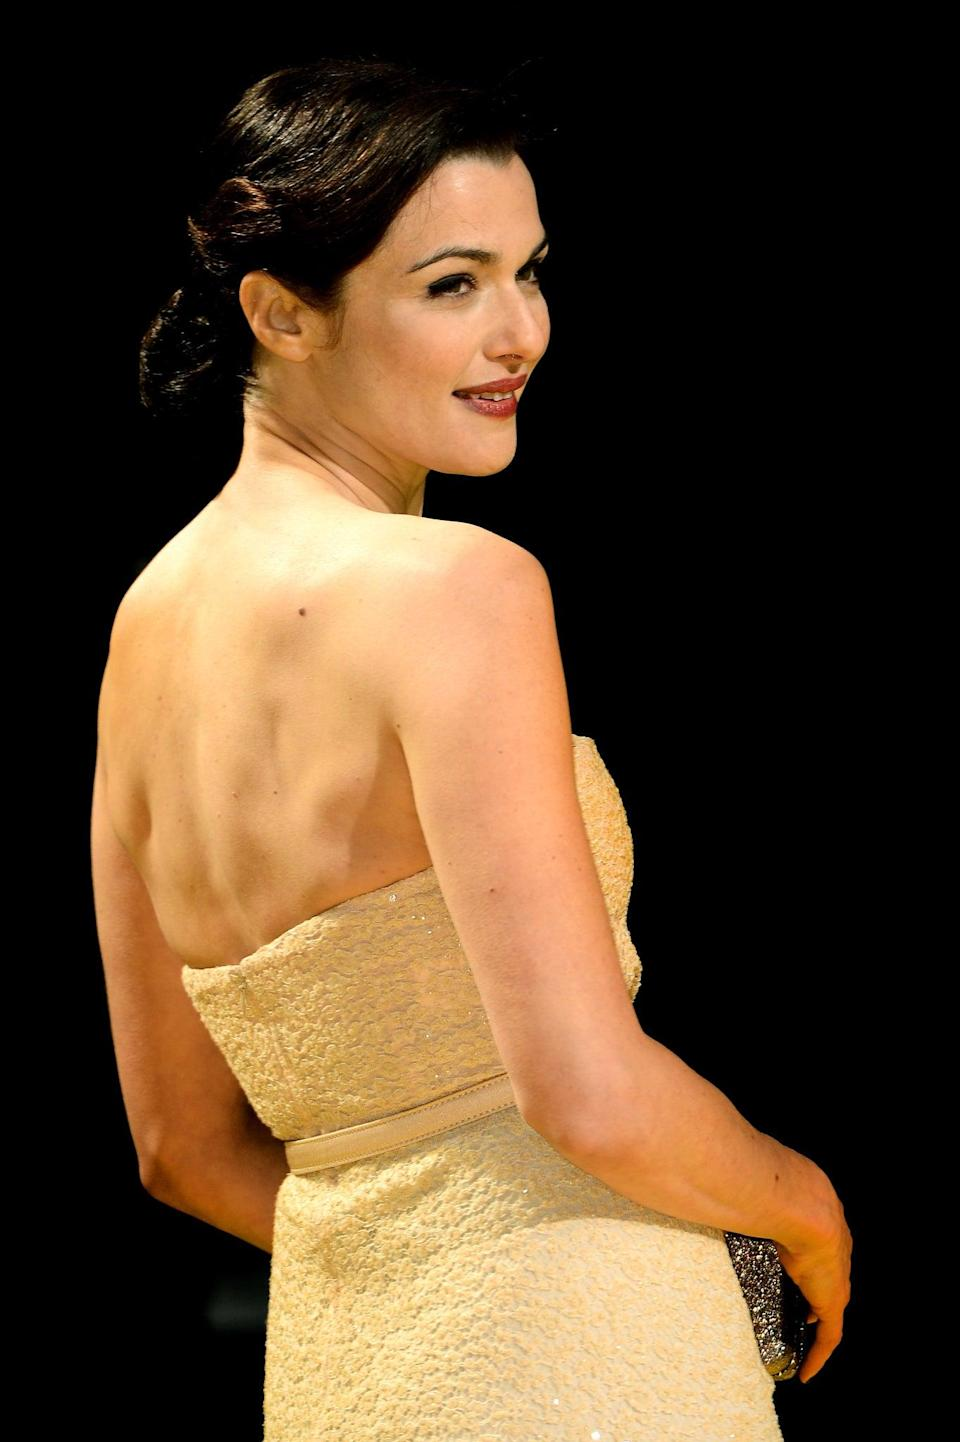 Rachel Weisz at the Oz The Great And Powerful premiereGetty Images